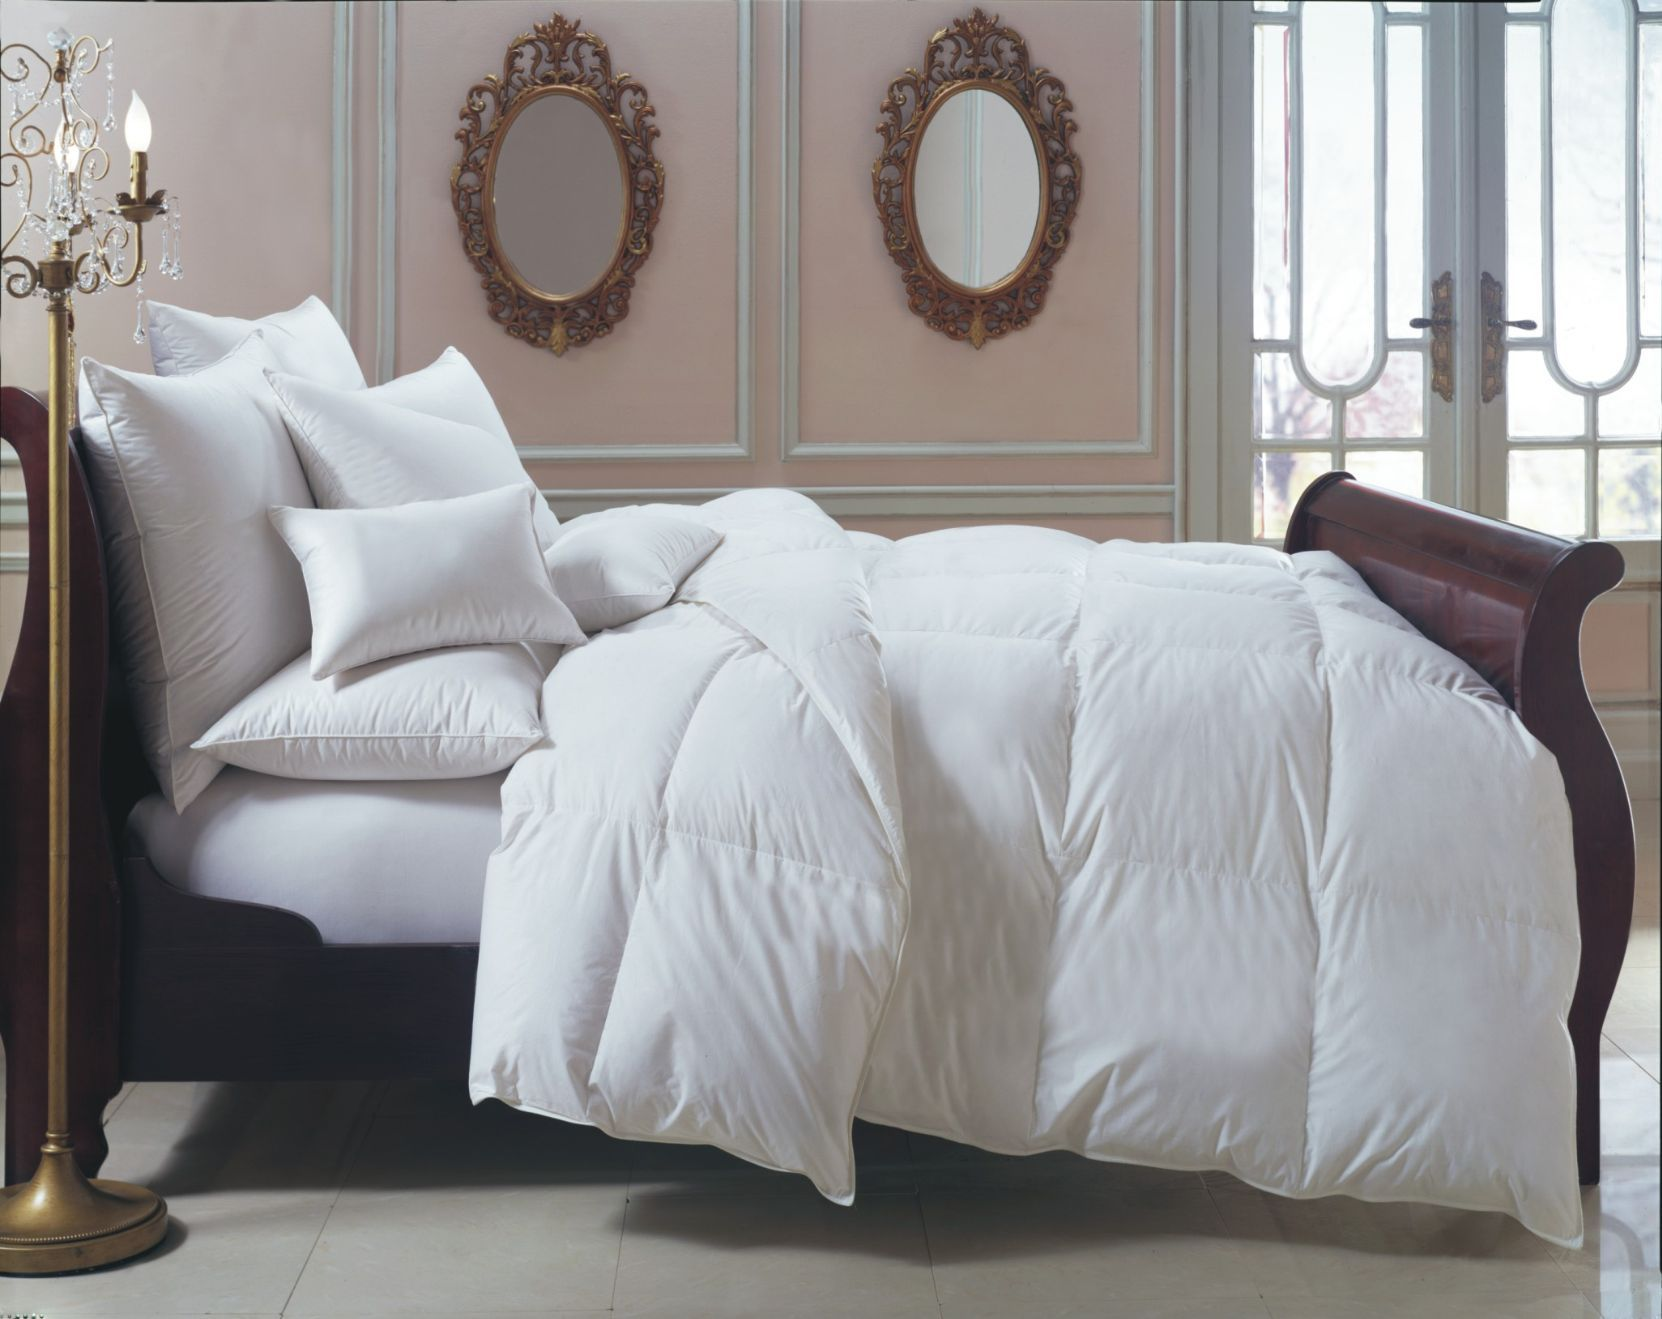 oversized king bernina heirloom fill power hungarian white goose downcomforter  all year weight. when you're looking for quality new comforters sets in edmonton